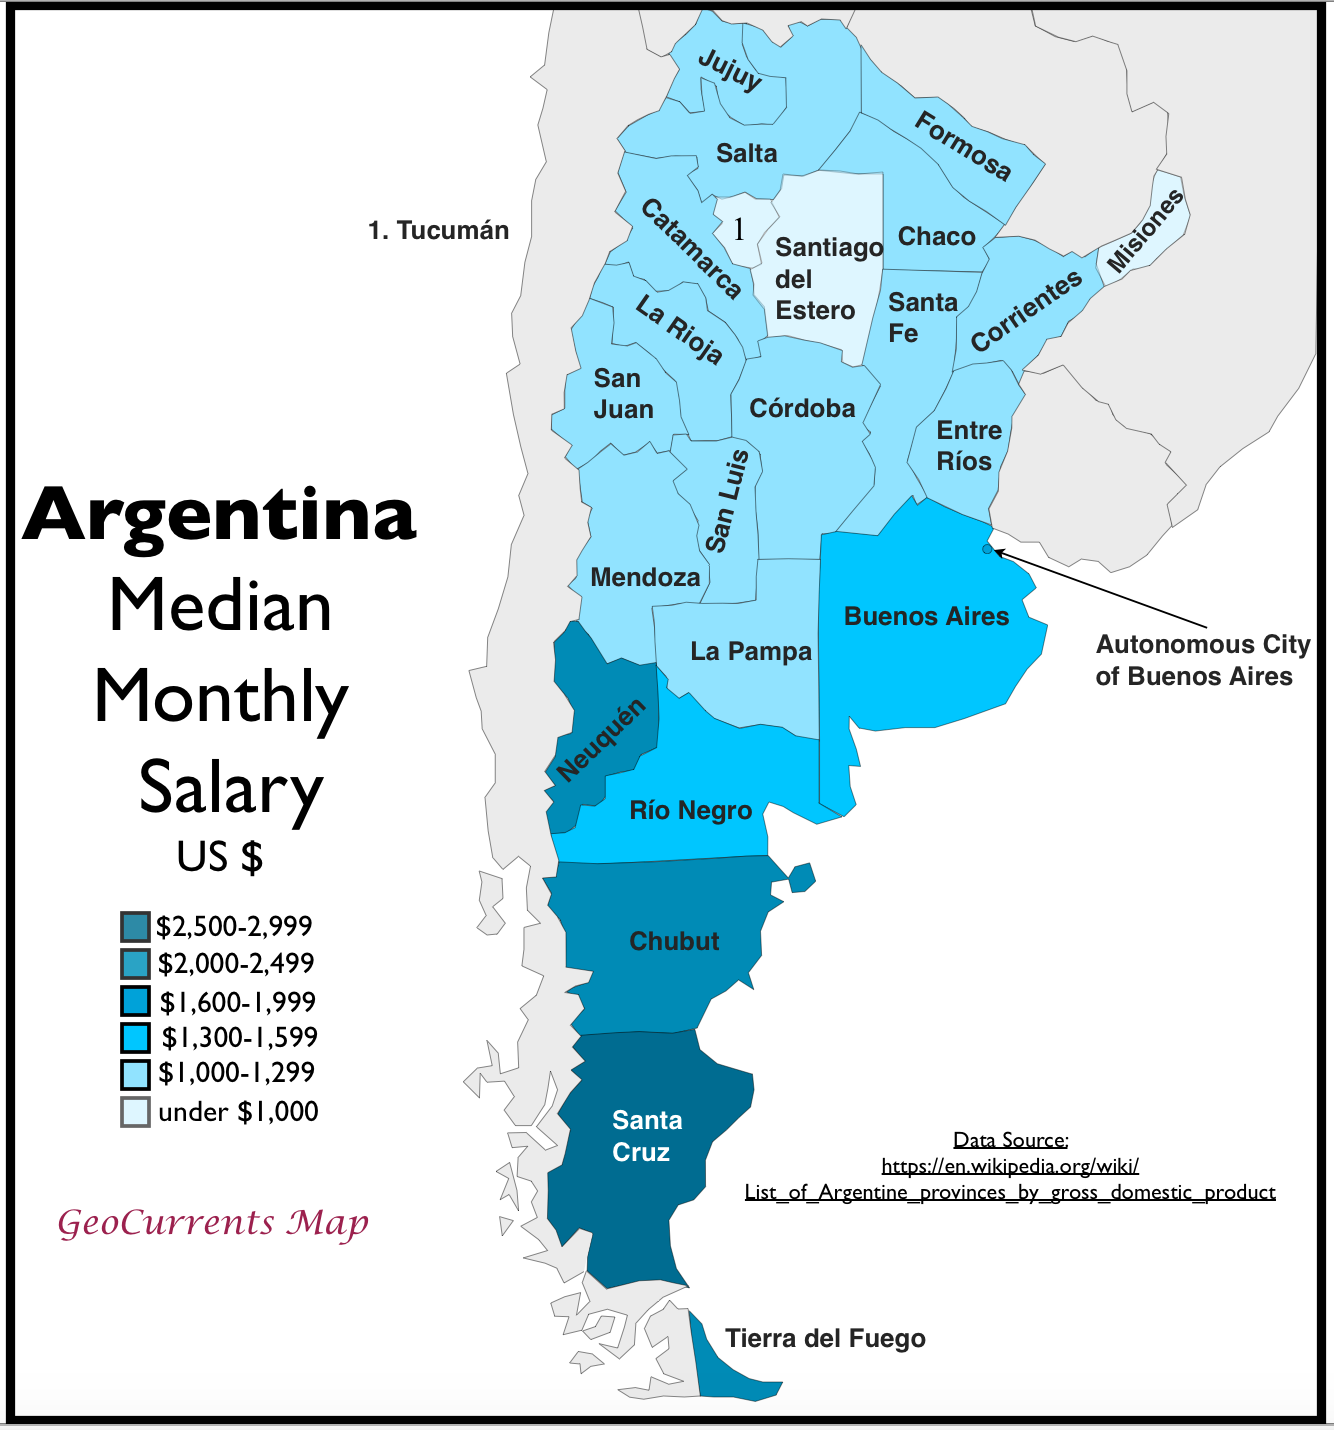 GeoCurrents Maps Of PersonalFamily Income Poverty GeoCurrents - Argentina map cordoba